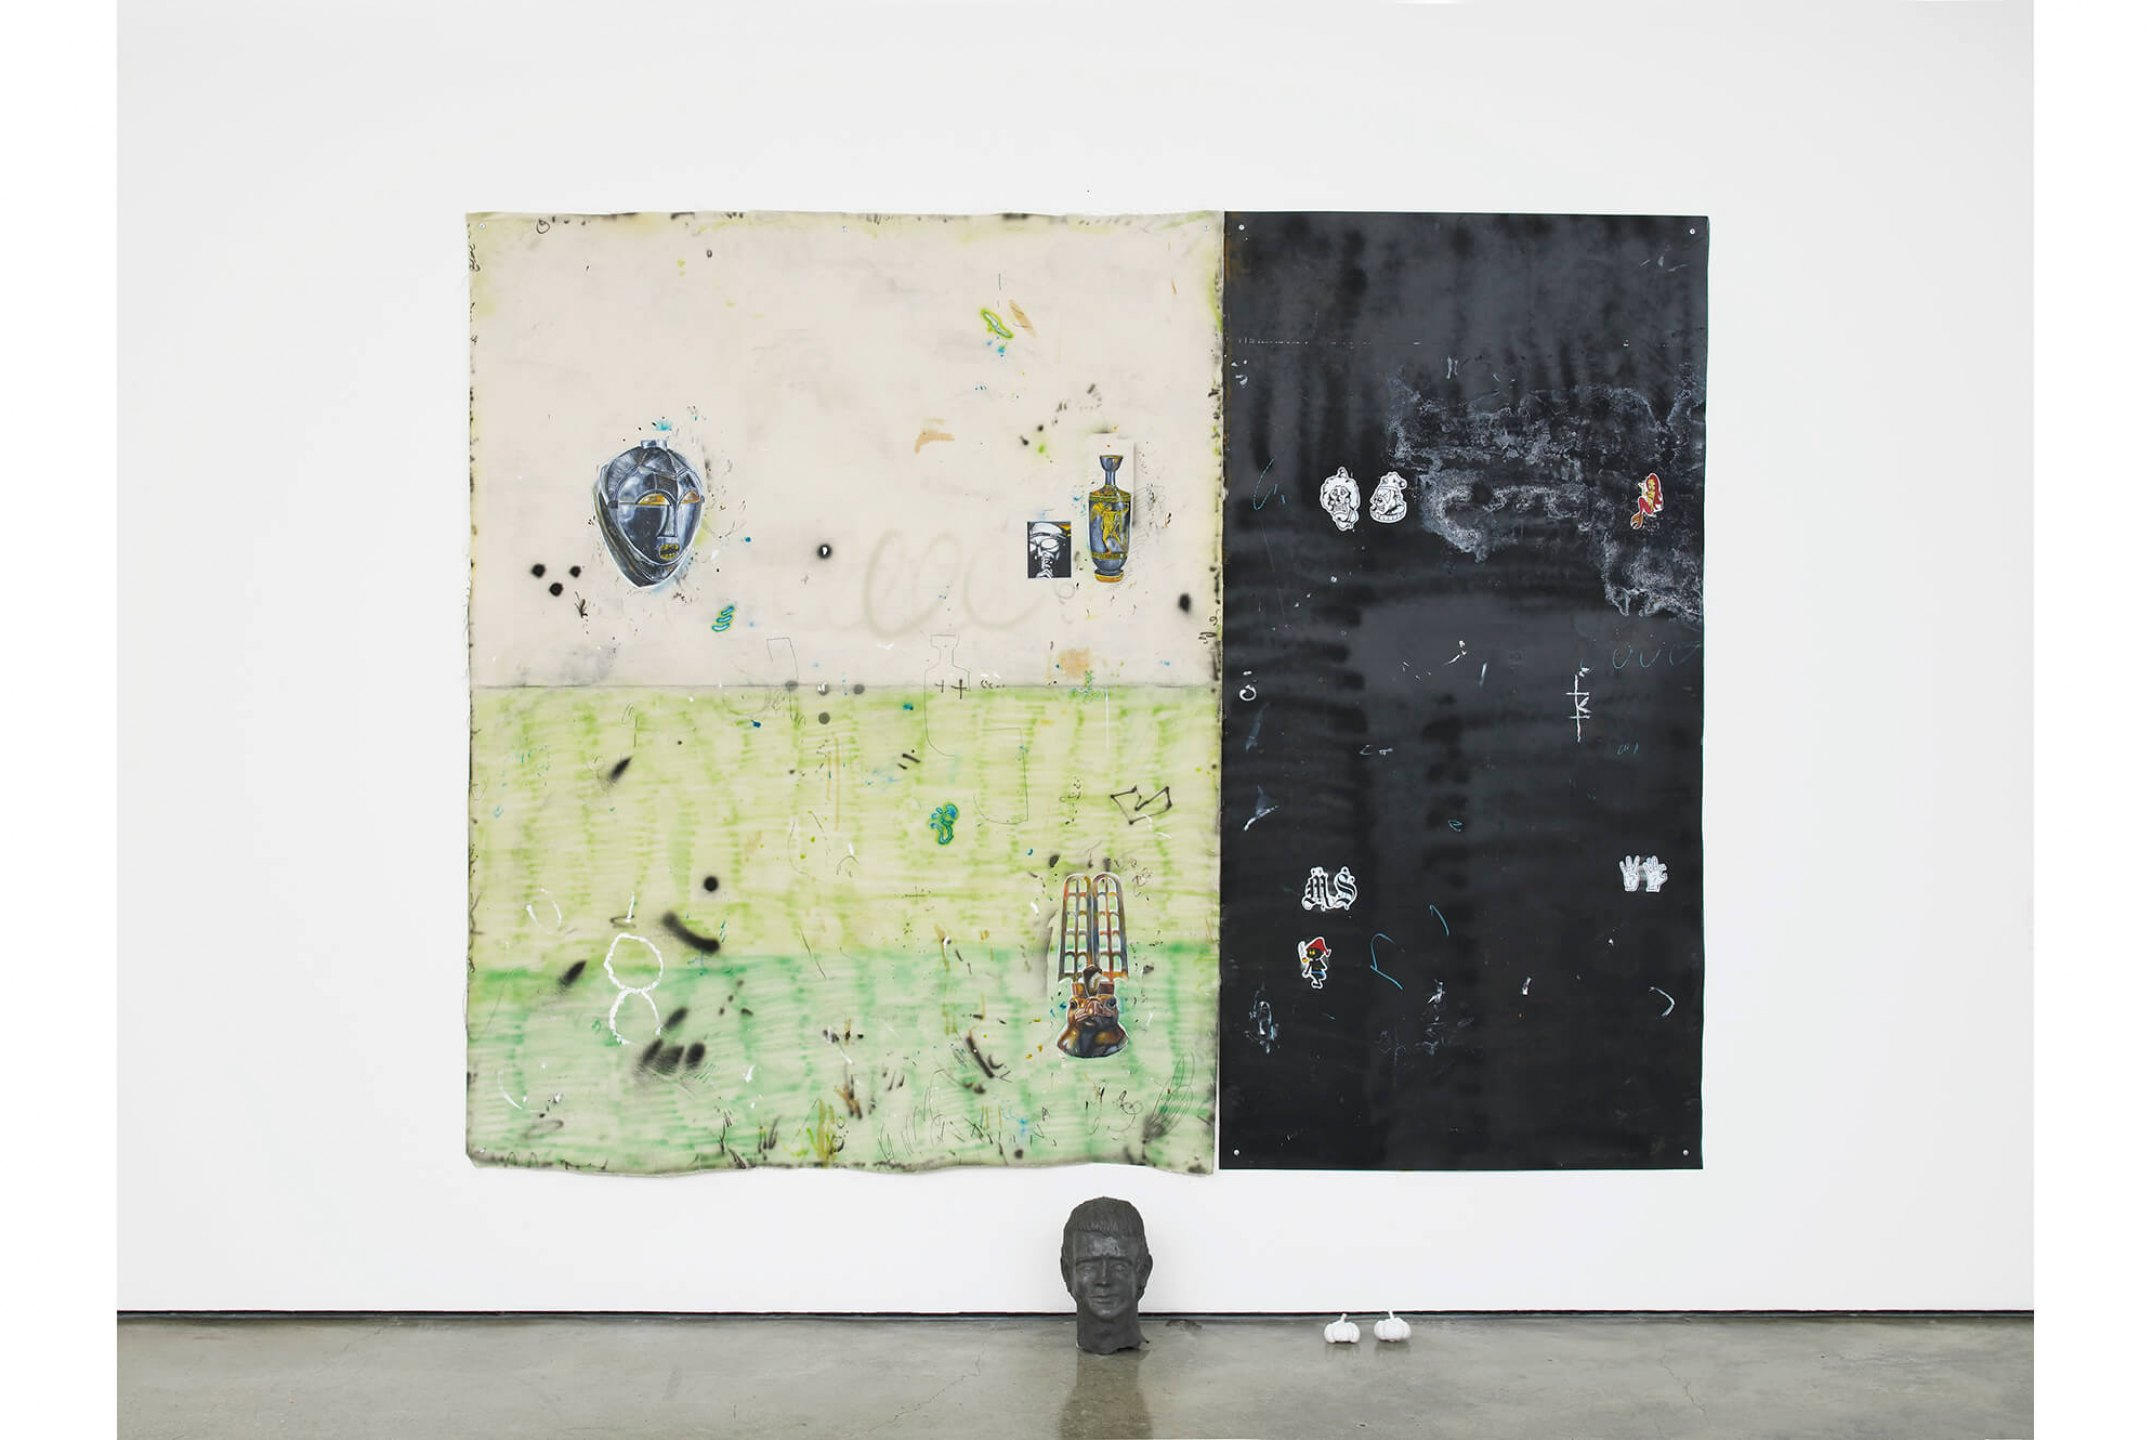 Paulo Nimer Pjota, <em>Between philosophy and crime, part. 3,</em>2016, acrylic, pencil and pen on canvas and iron plate, 255 × 200 cm - Mendes Wood DM